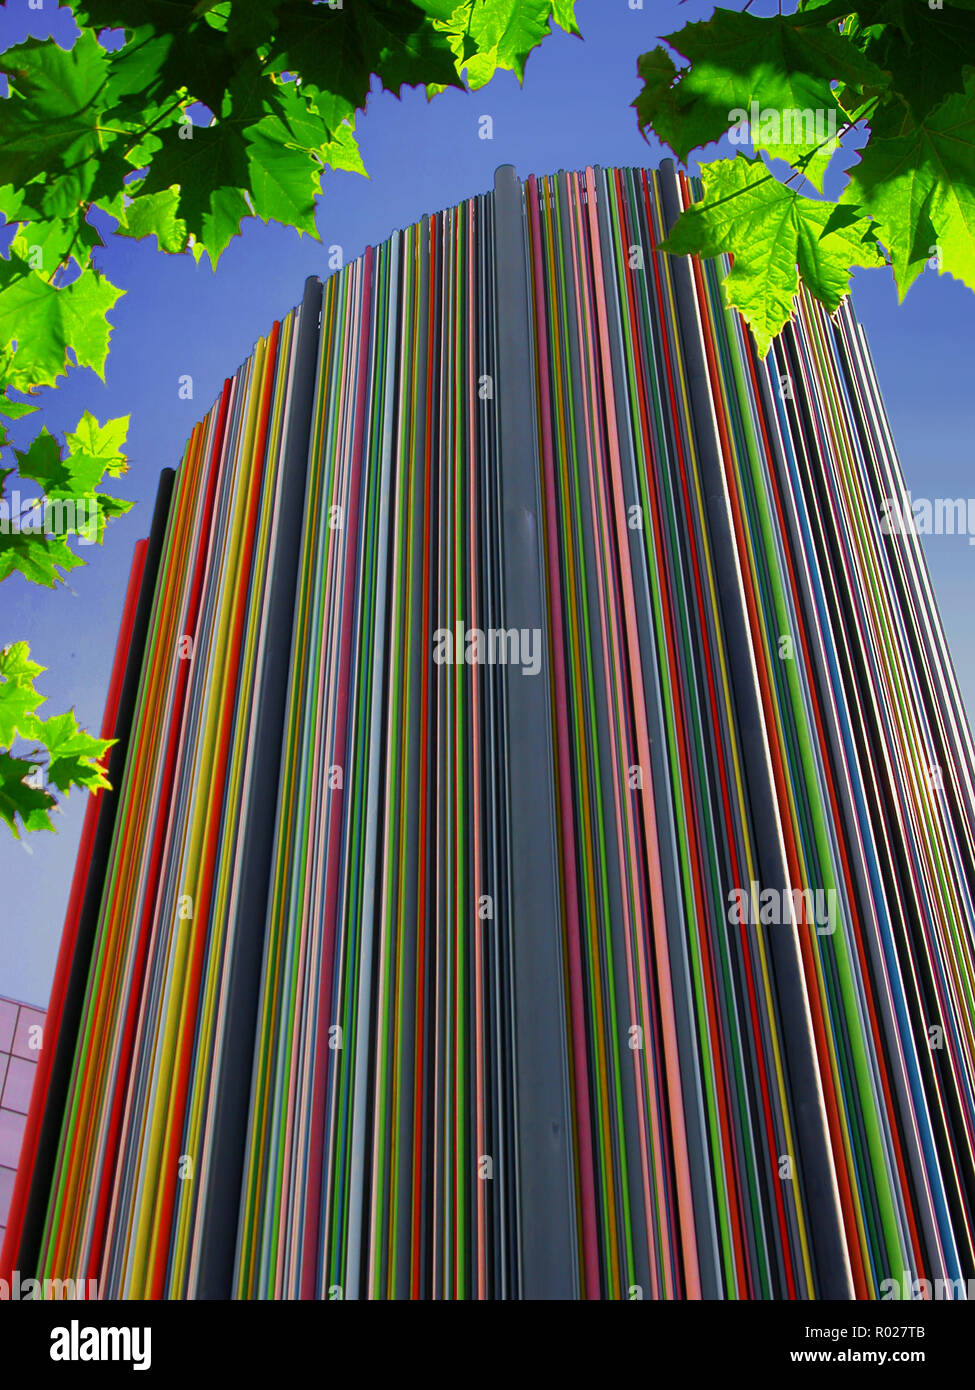 La Cheminée De Moretti La Défense Paris A Modern Sculpture 32 Meters High Made By Raymond Moretti And Consisting Of Hundreds Of Colored Tubes Stock Photo Alamy